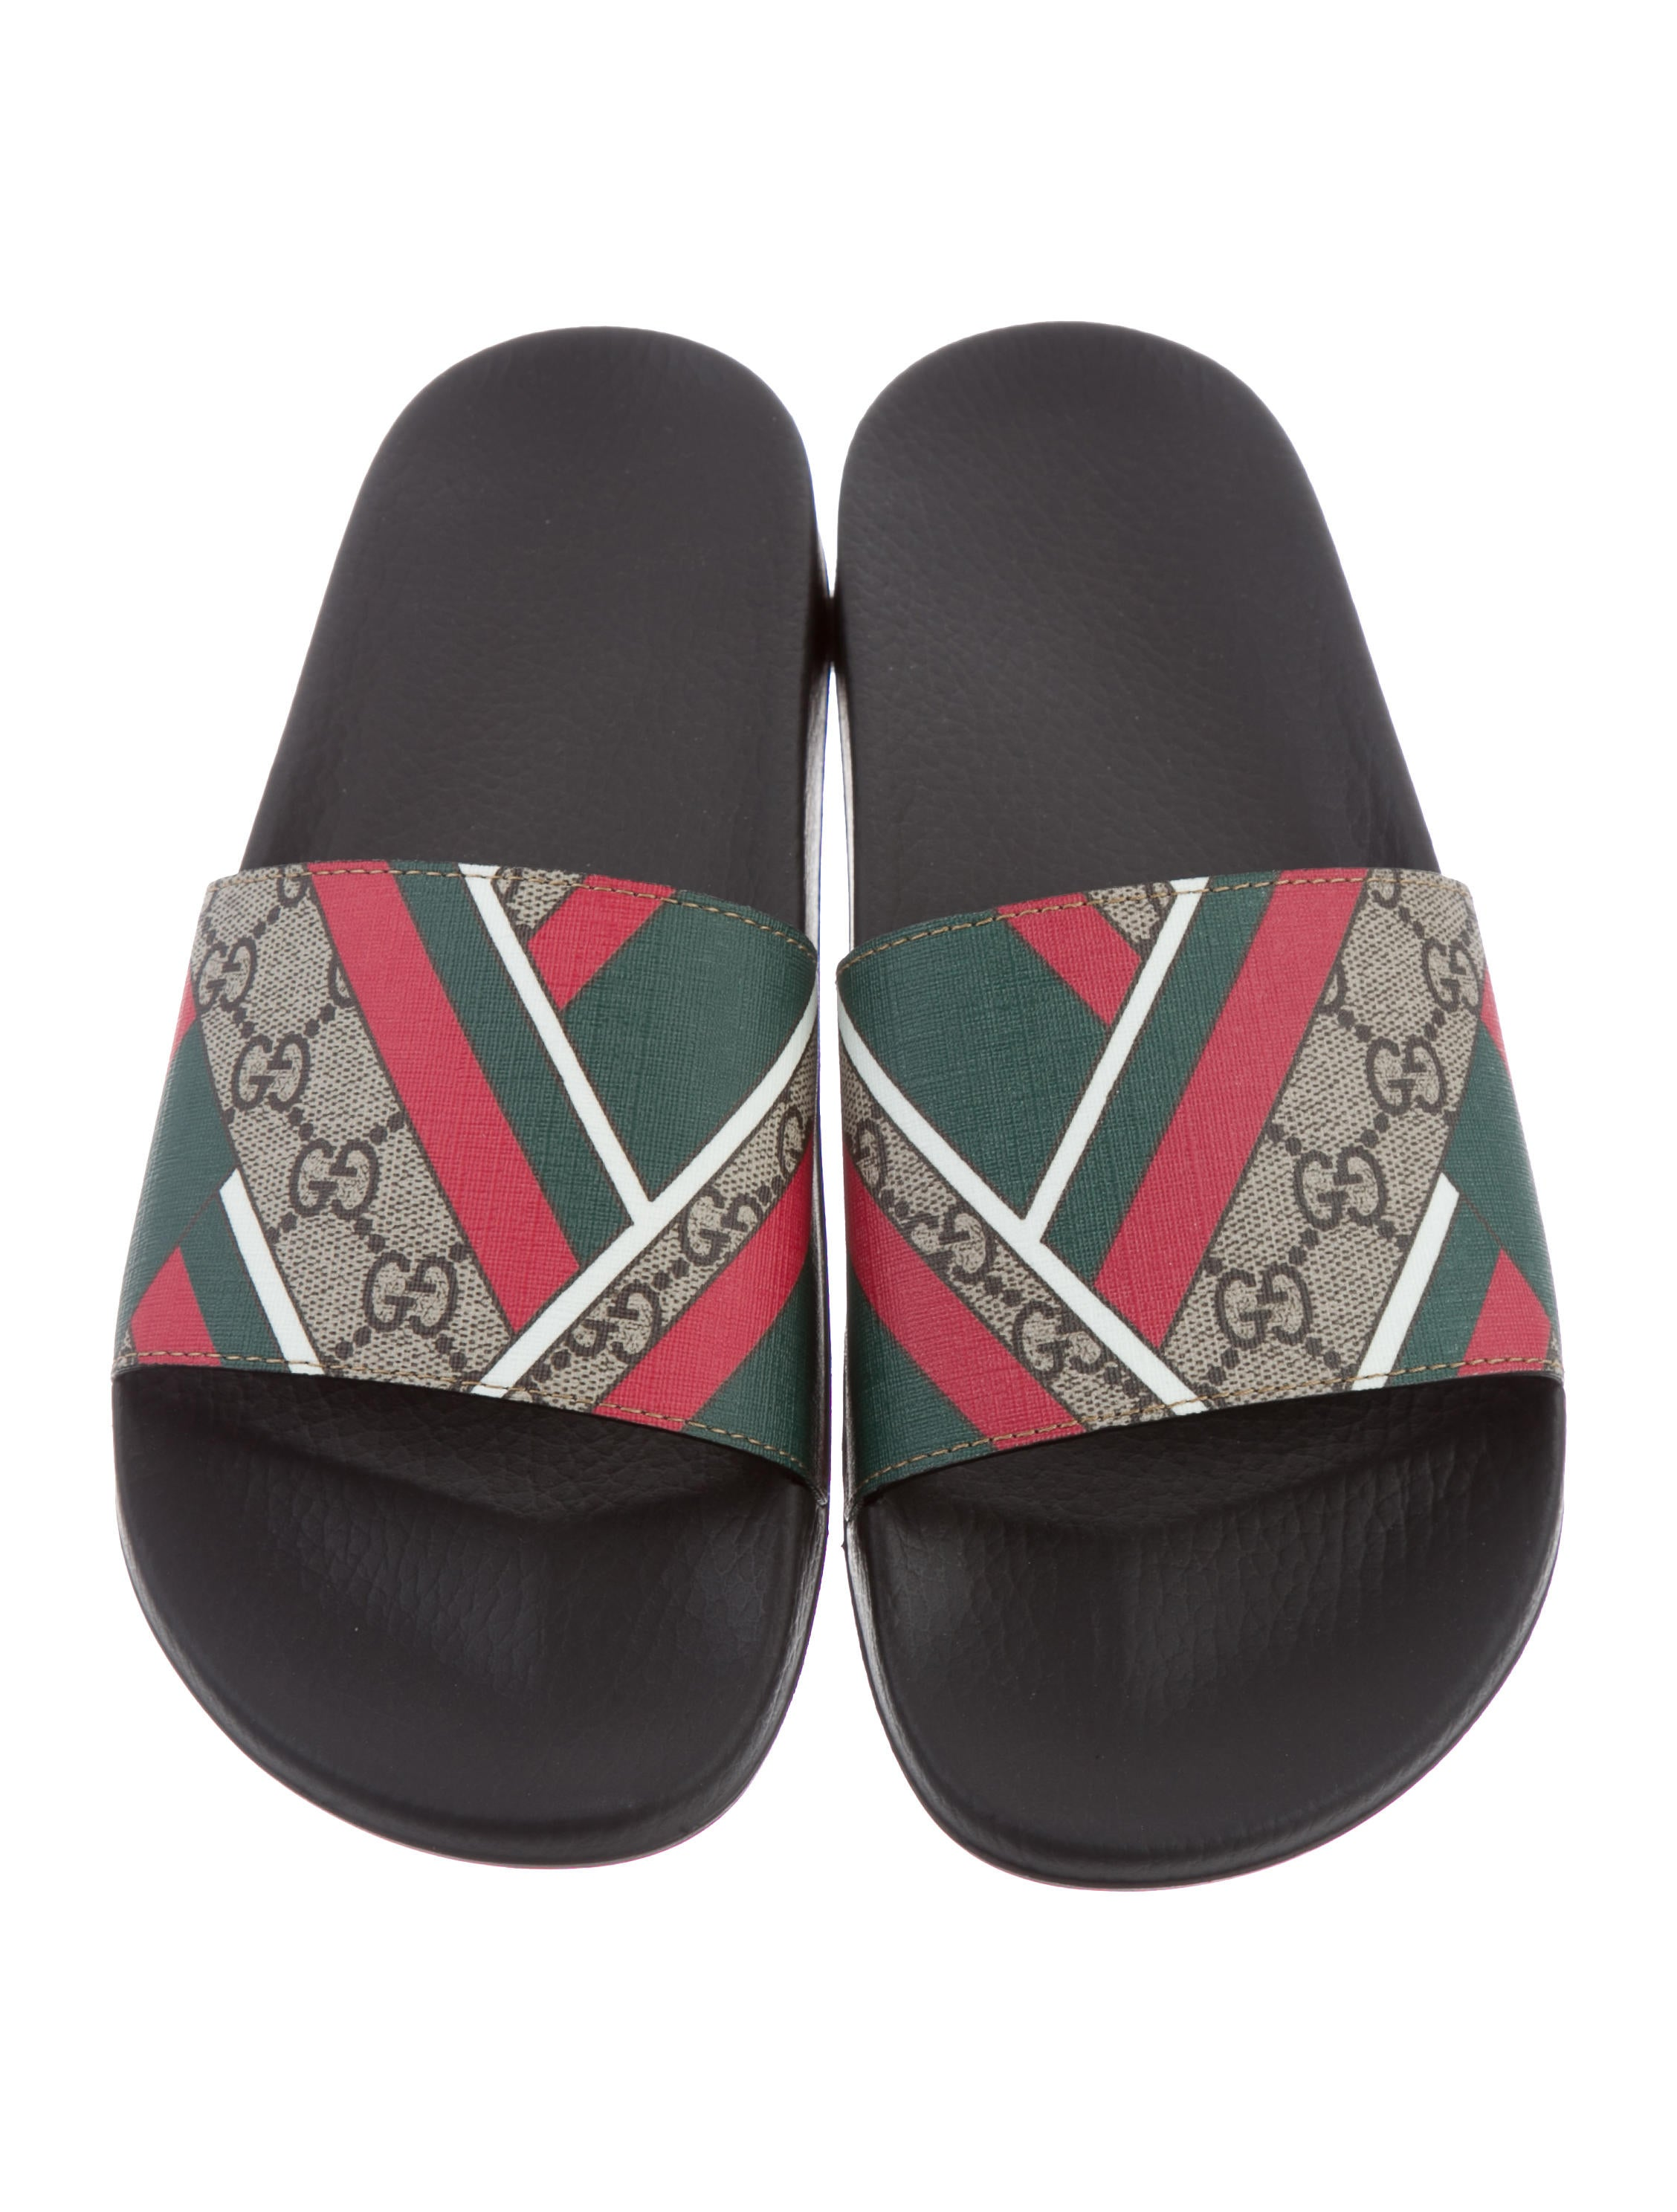 Gucci Gg Supreme Slide Sandals Shoes Guc135075 The